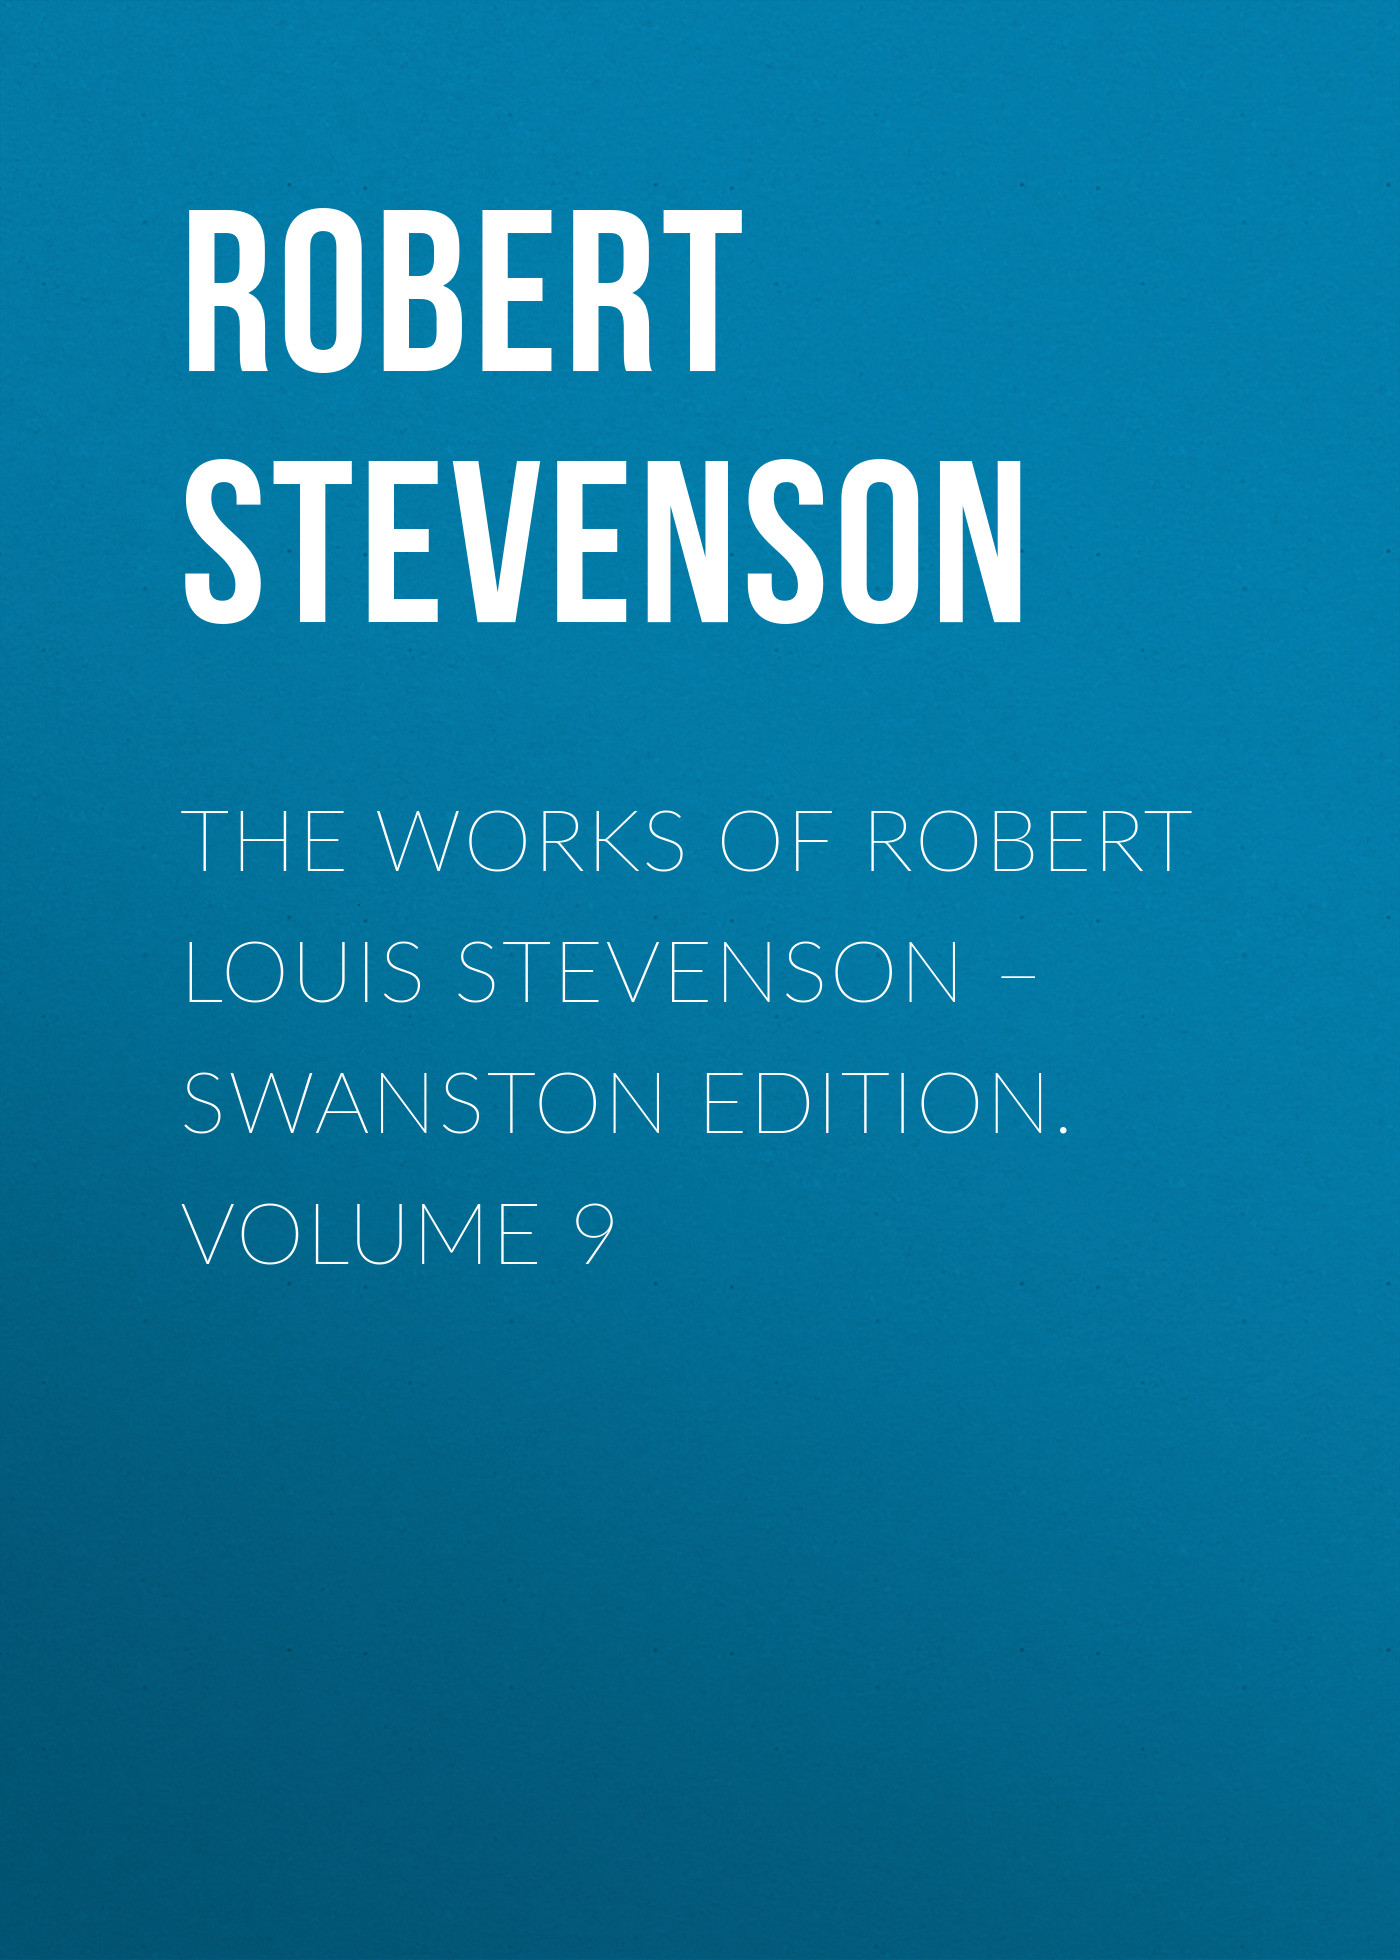 цена на Роберт Льюис Стивенсон The Works of Robert Louis Stevenson – Swanston Edition. Volume 9